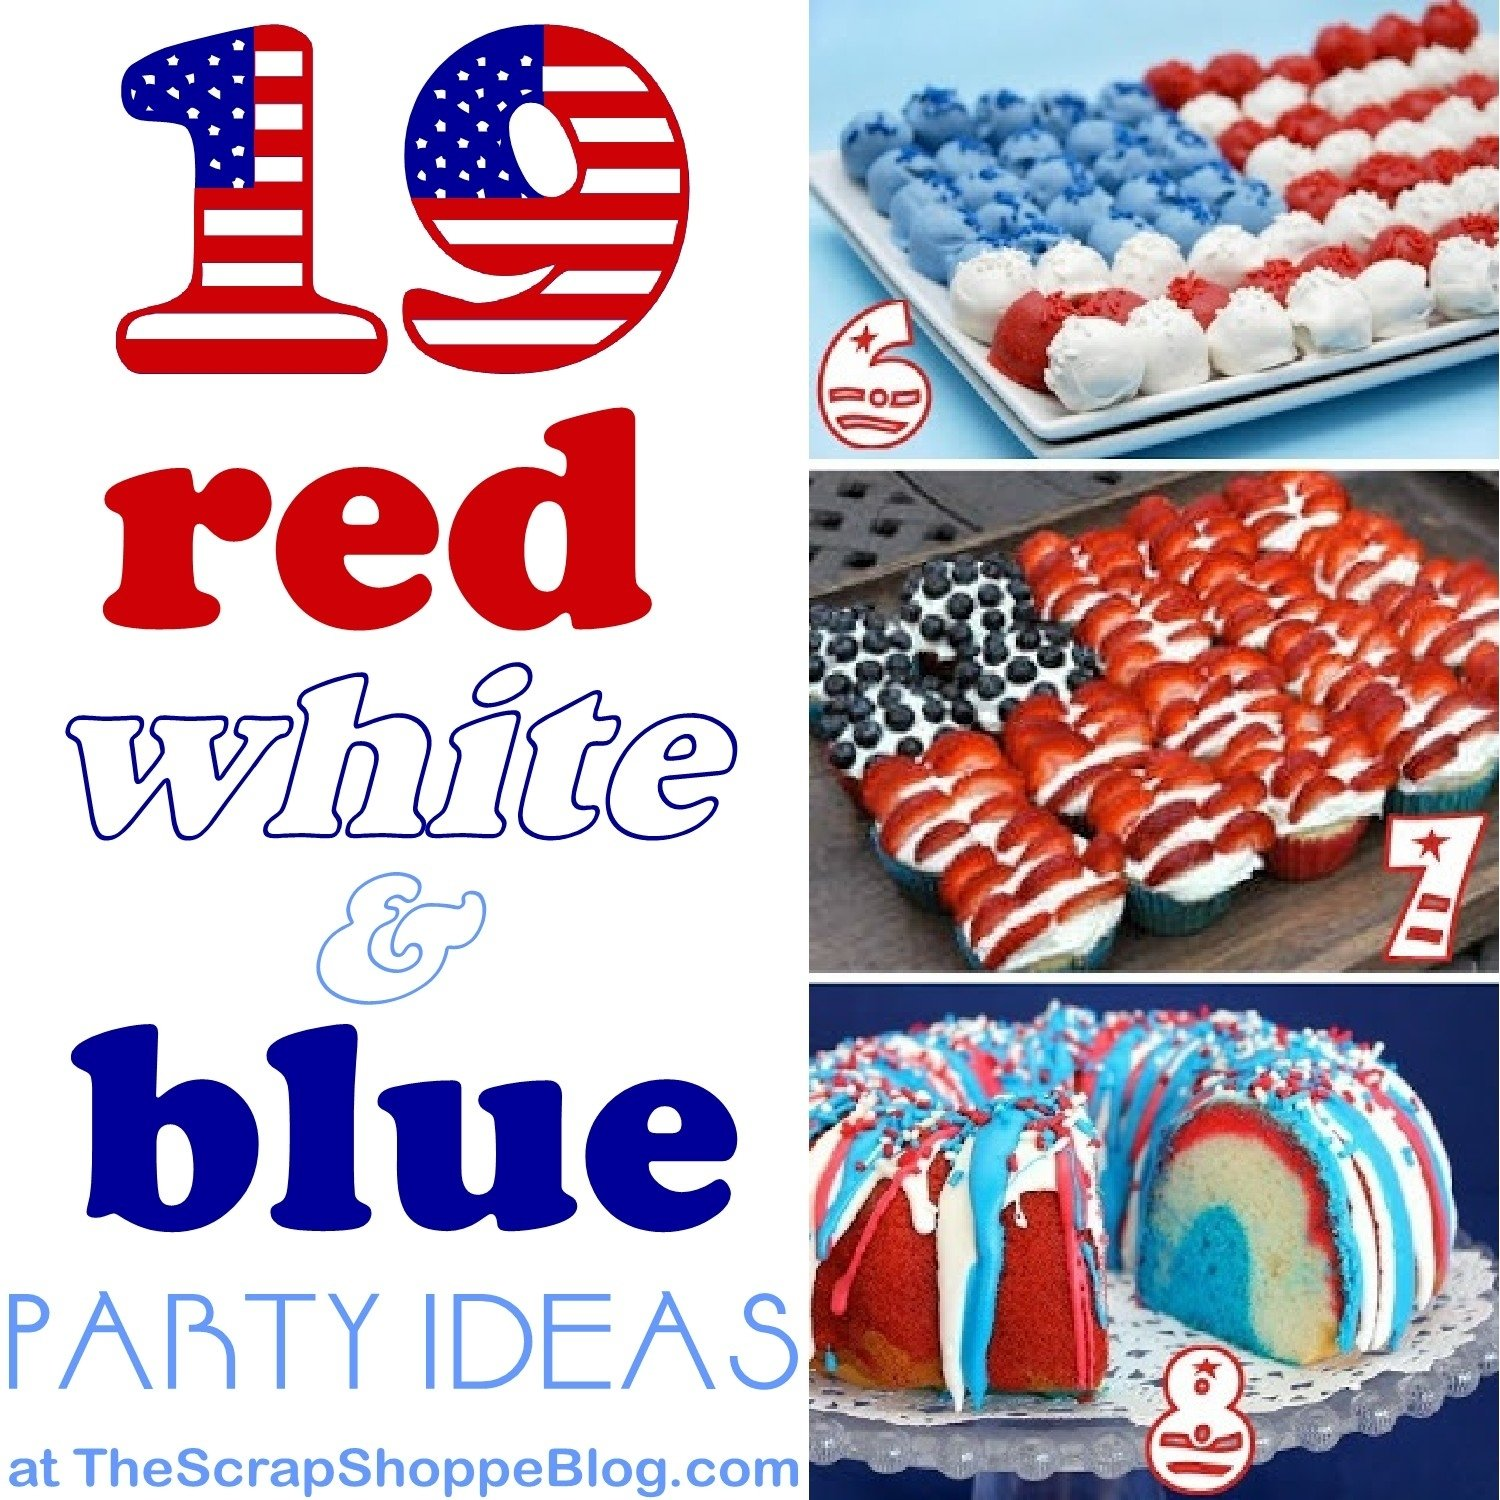 19 red, white, & blue party ideas - the scrap shoppe